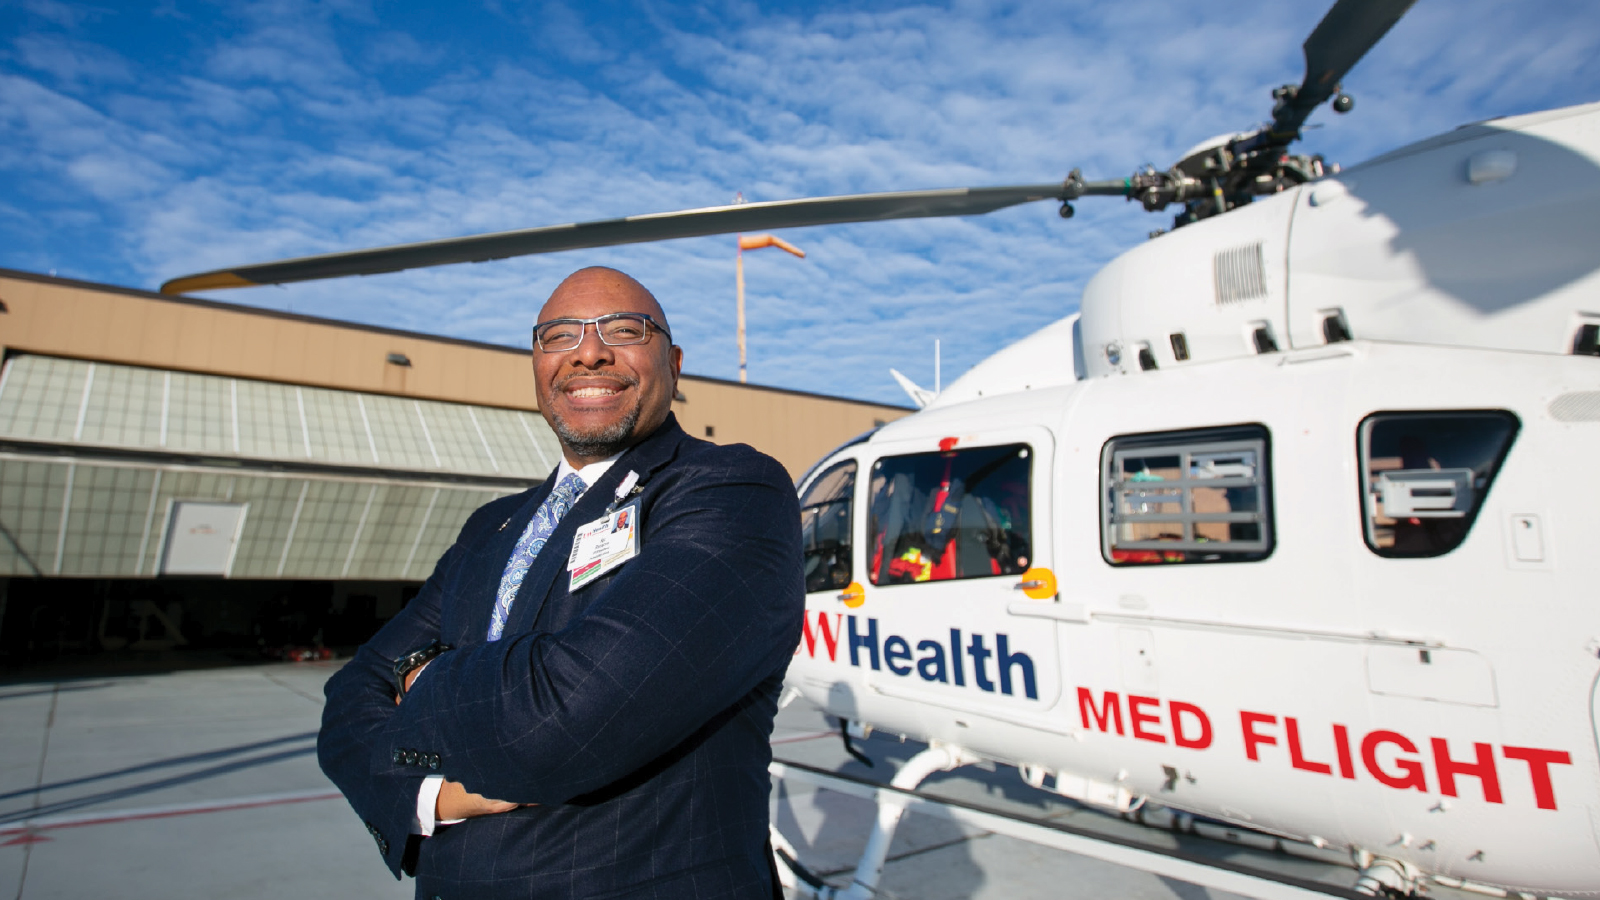 Ric Ransom standing on the roof of UW Hospital with a Med Flight helicopter